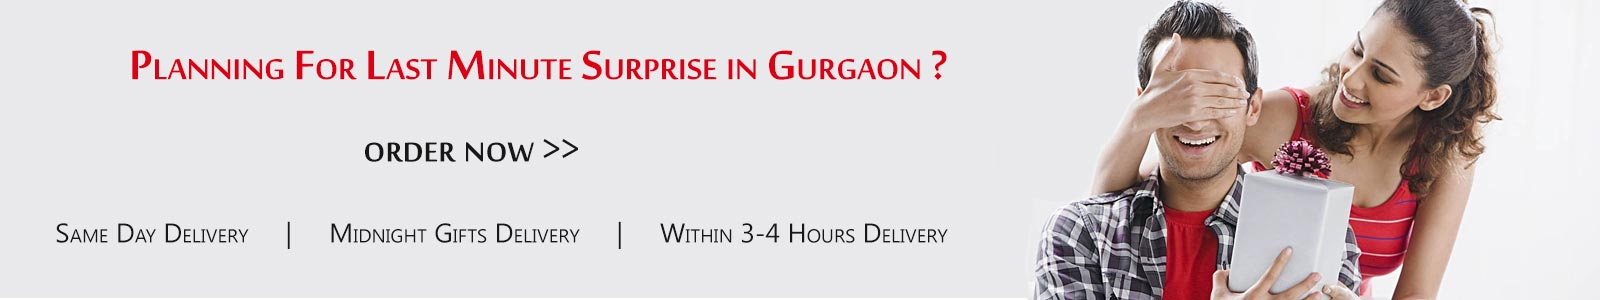 Send Gifts To Gurgaon : Same Day Online Gift Delivery In Gurgaon